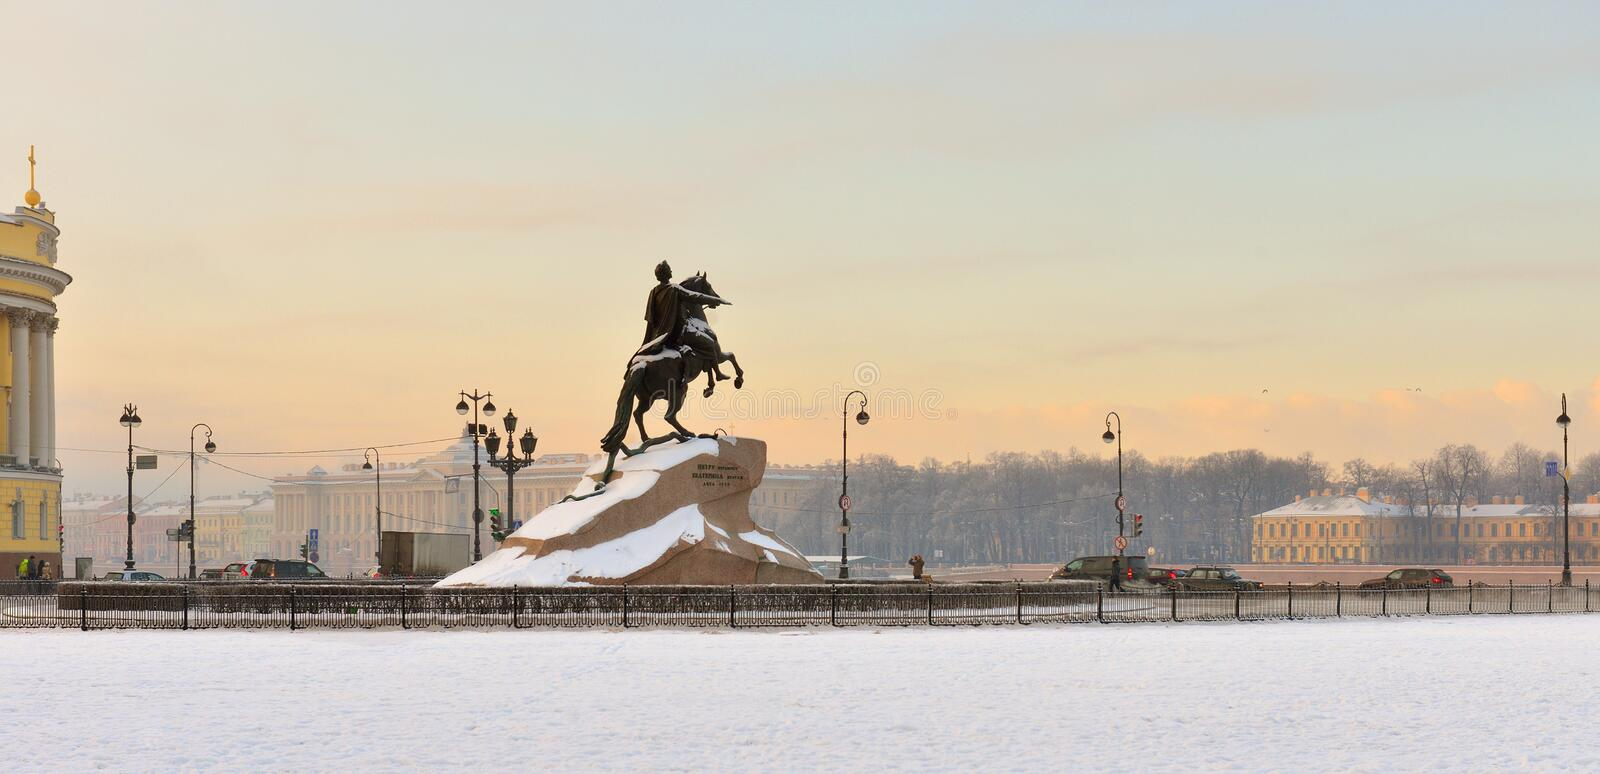 Equestrian statue of Peter Great is situated in Senate Square. Bronze Horseman is an equestrian statue of Peter the Great in Saint Petersburg, Russia stock images